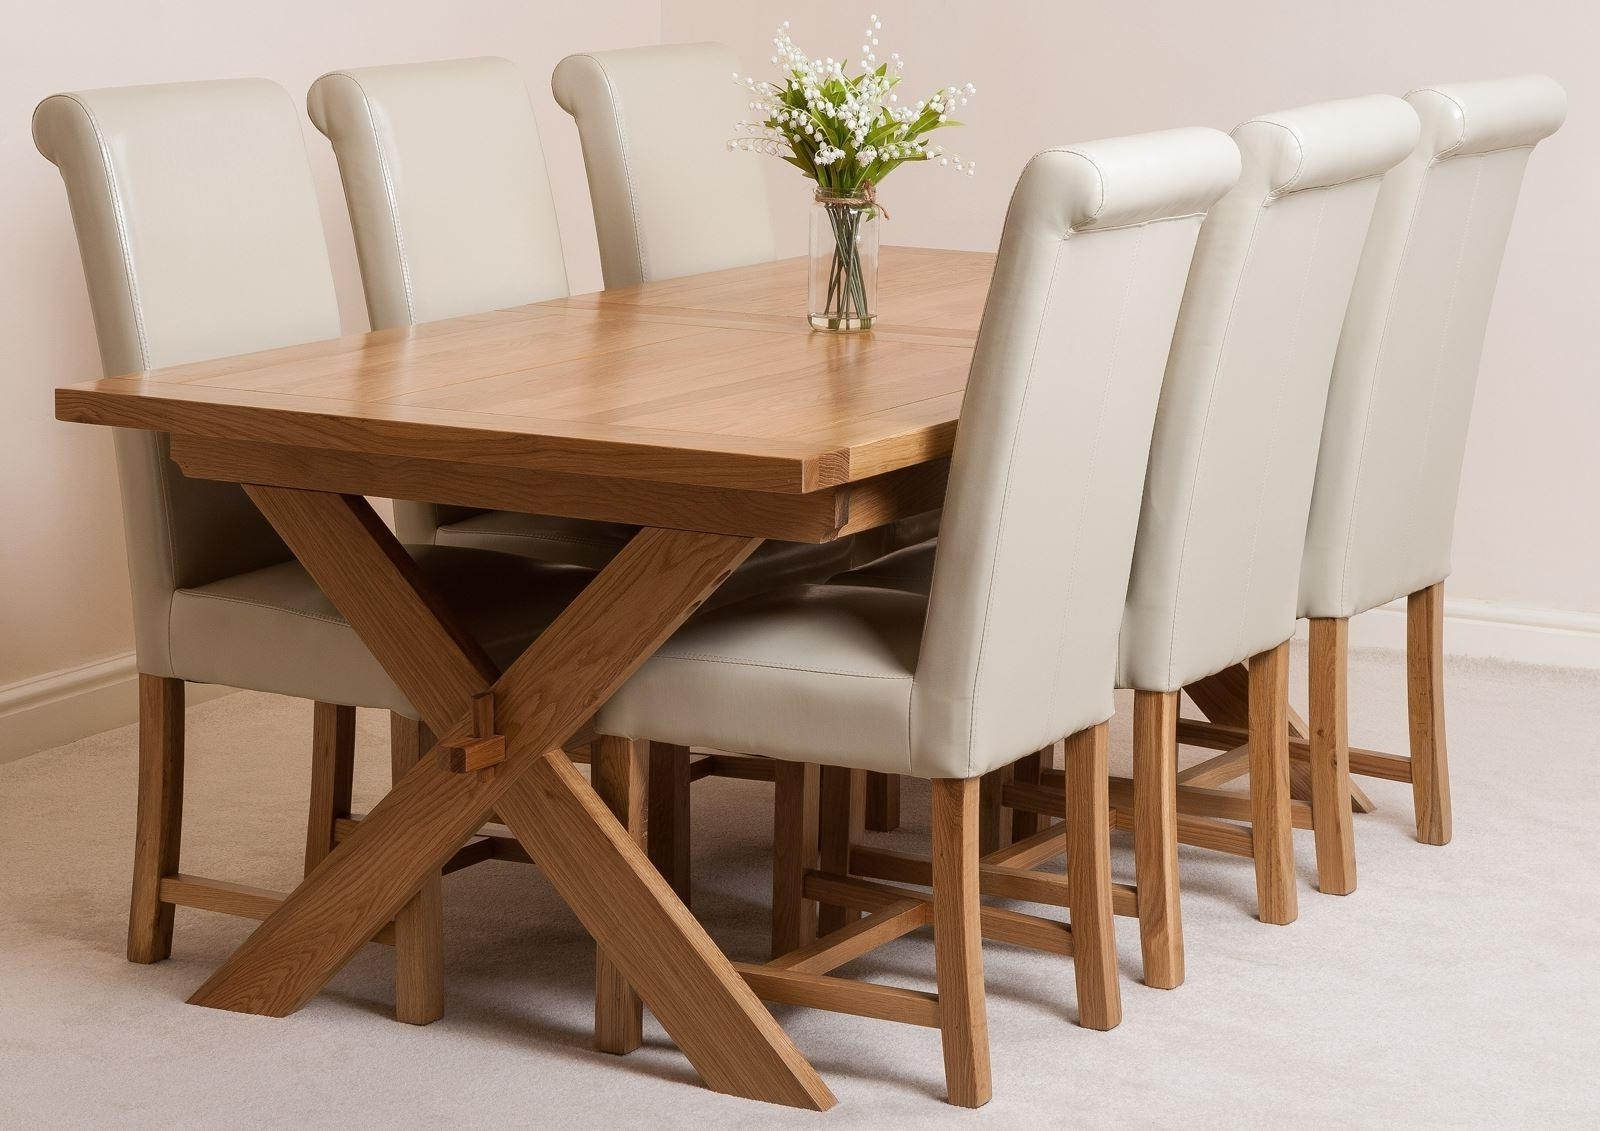 Oak Furniture King Regarding Well Known Oak Dining Tables With 6 Chairs (View 15 of 25)